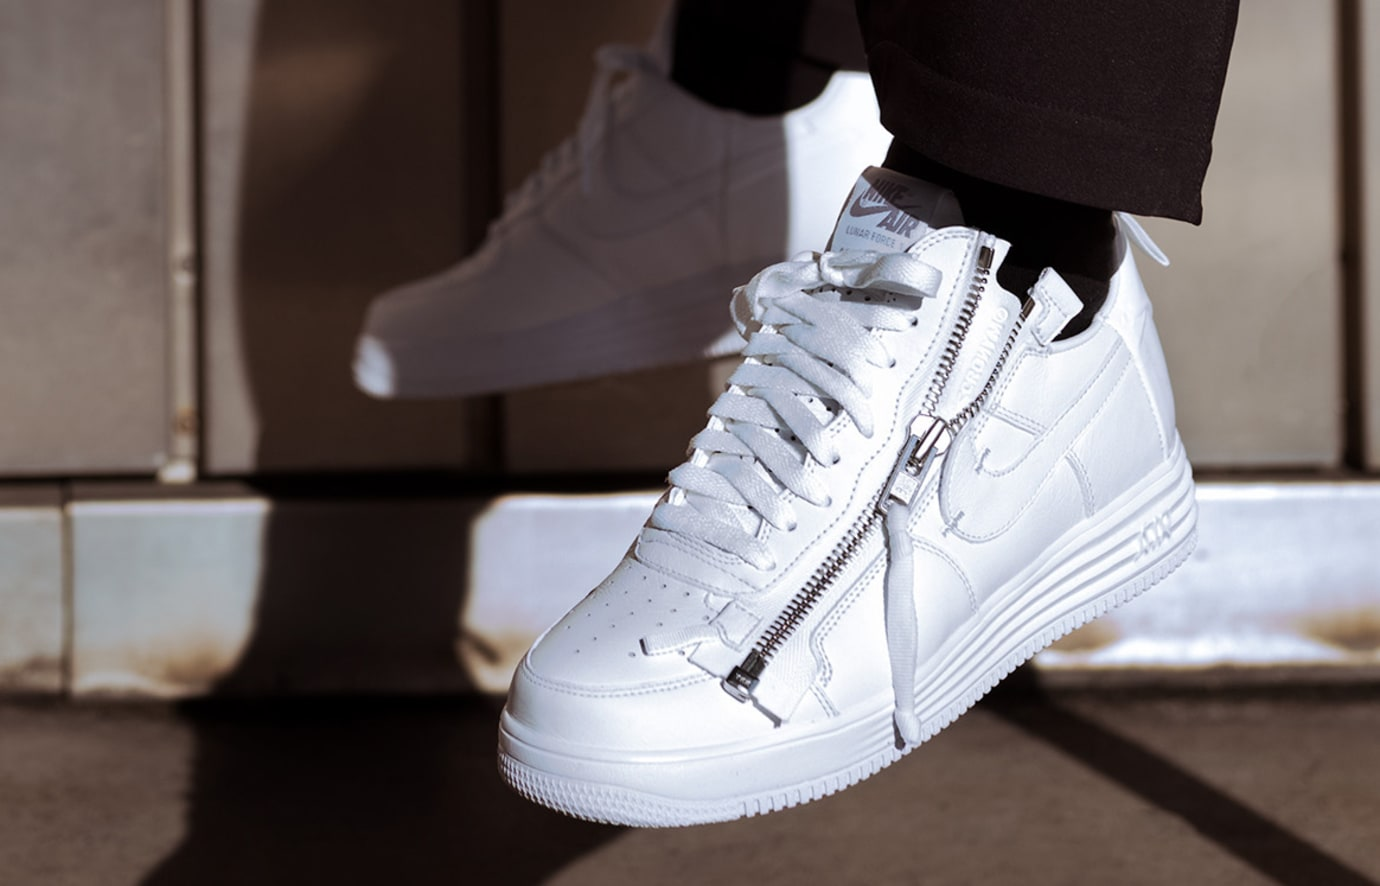 Nike Air Force 1 Roc A Fella Acronym Off White Travis Scott